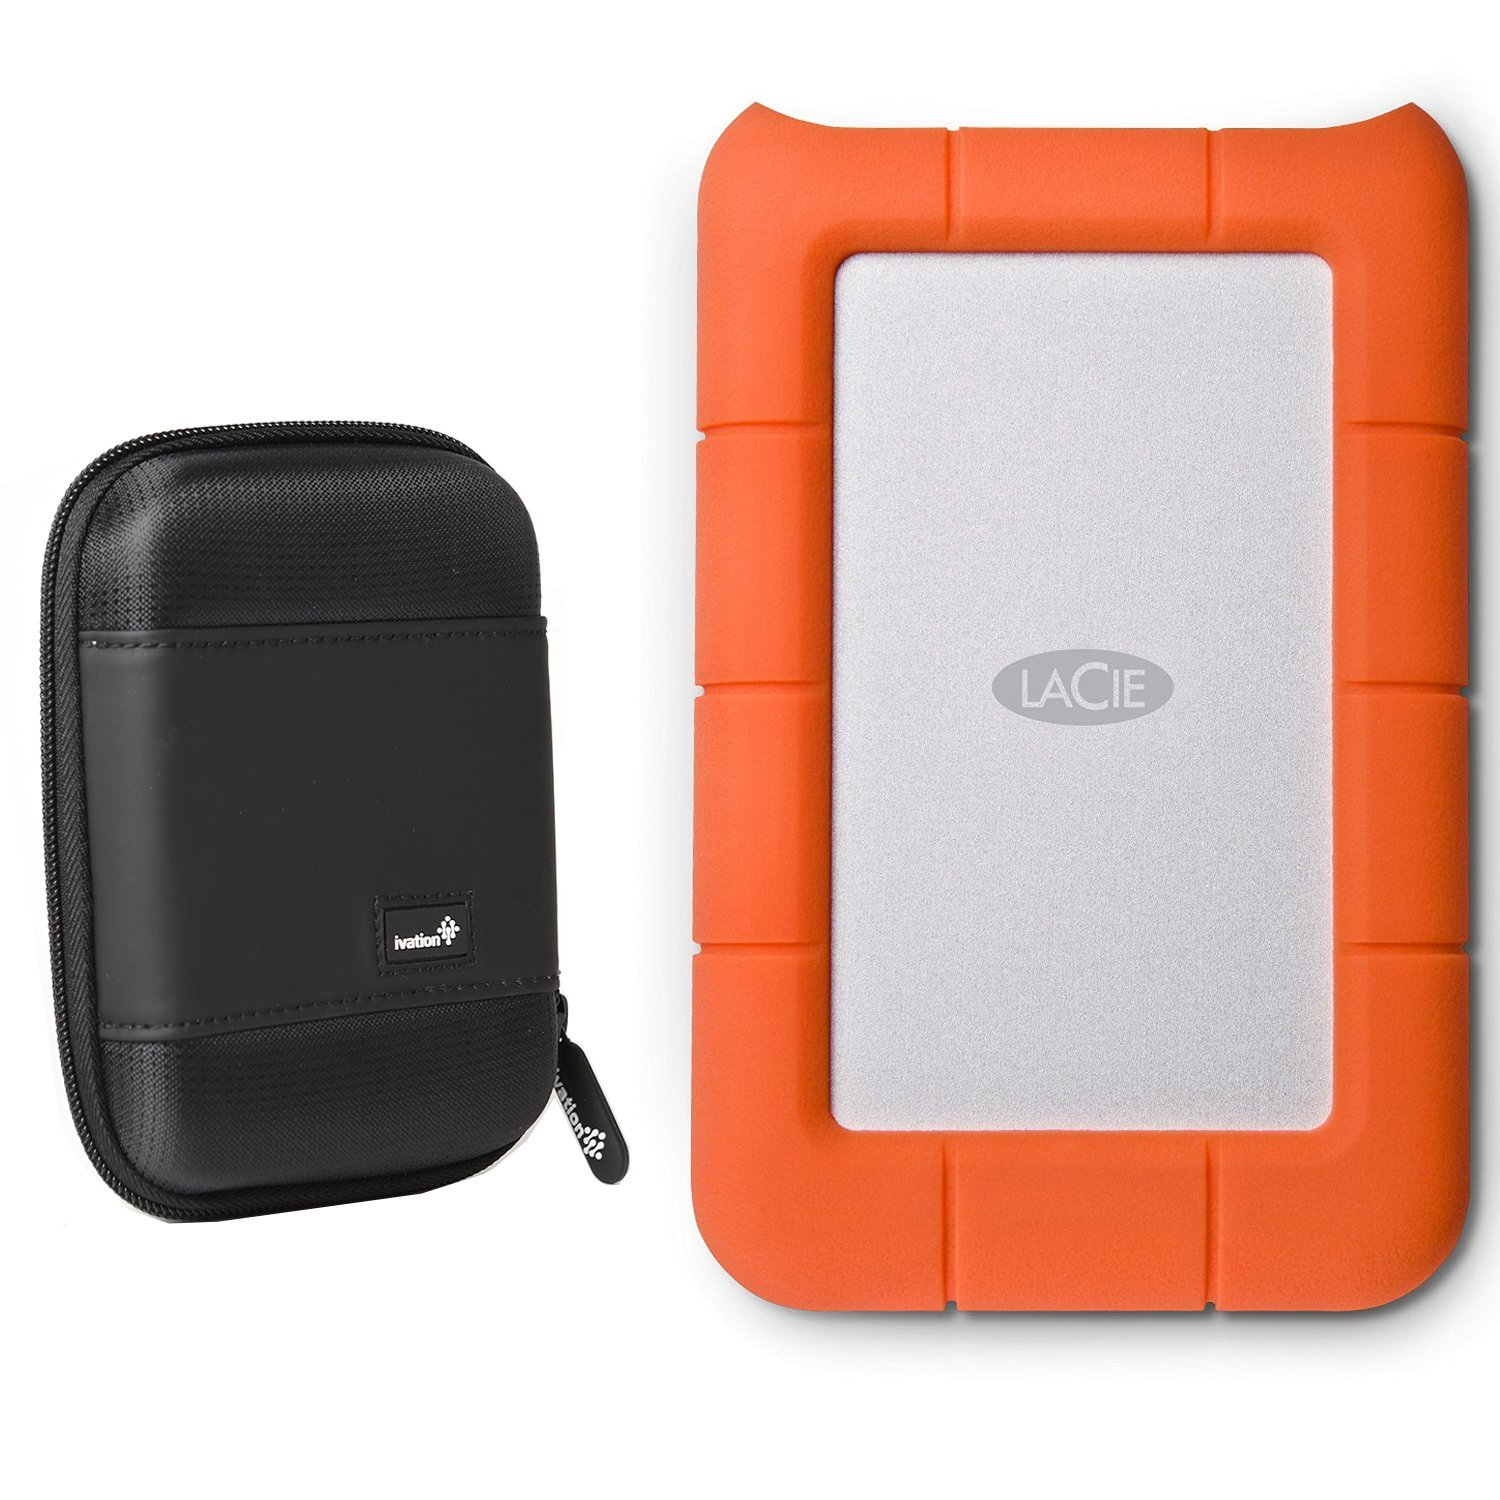 LaCie Rugged Mini USB 3.0 / USB 2.0 1TB External Mobile Hard Drive 301558 With Ivation Compact Portable Hard Drive Case (Small)